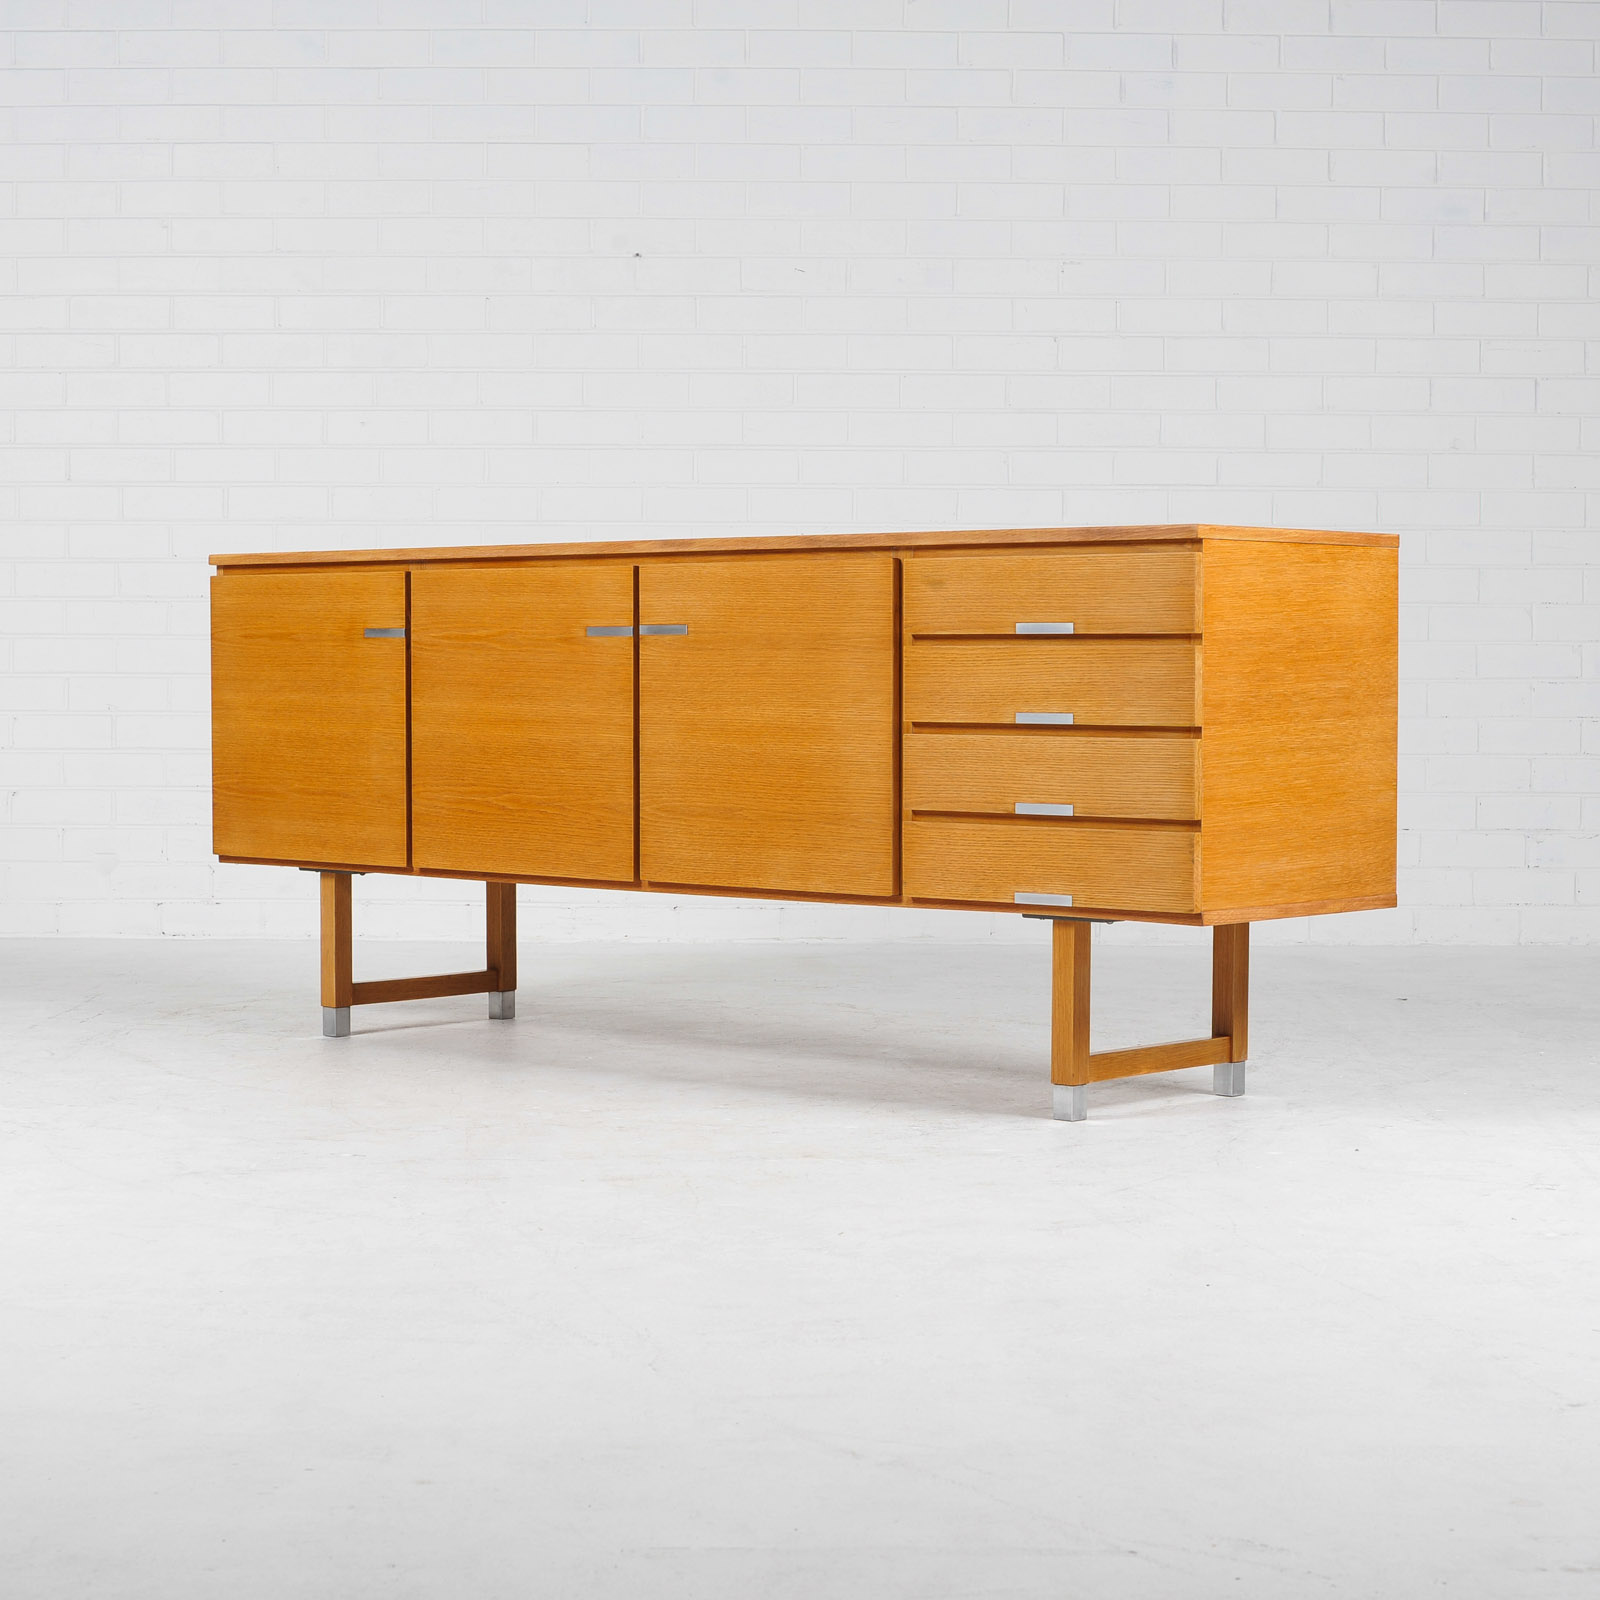 Sideboard By Kai Kristiansen For Fm Mobler In Oak With Polished Aluminium Details 1960s Denmark 02